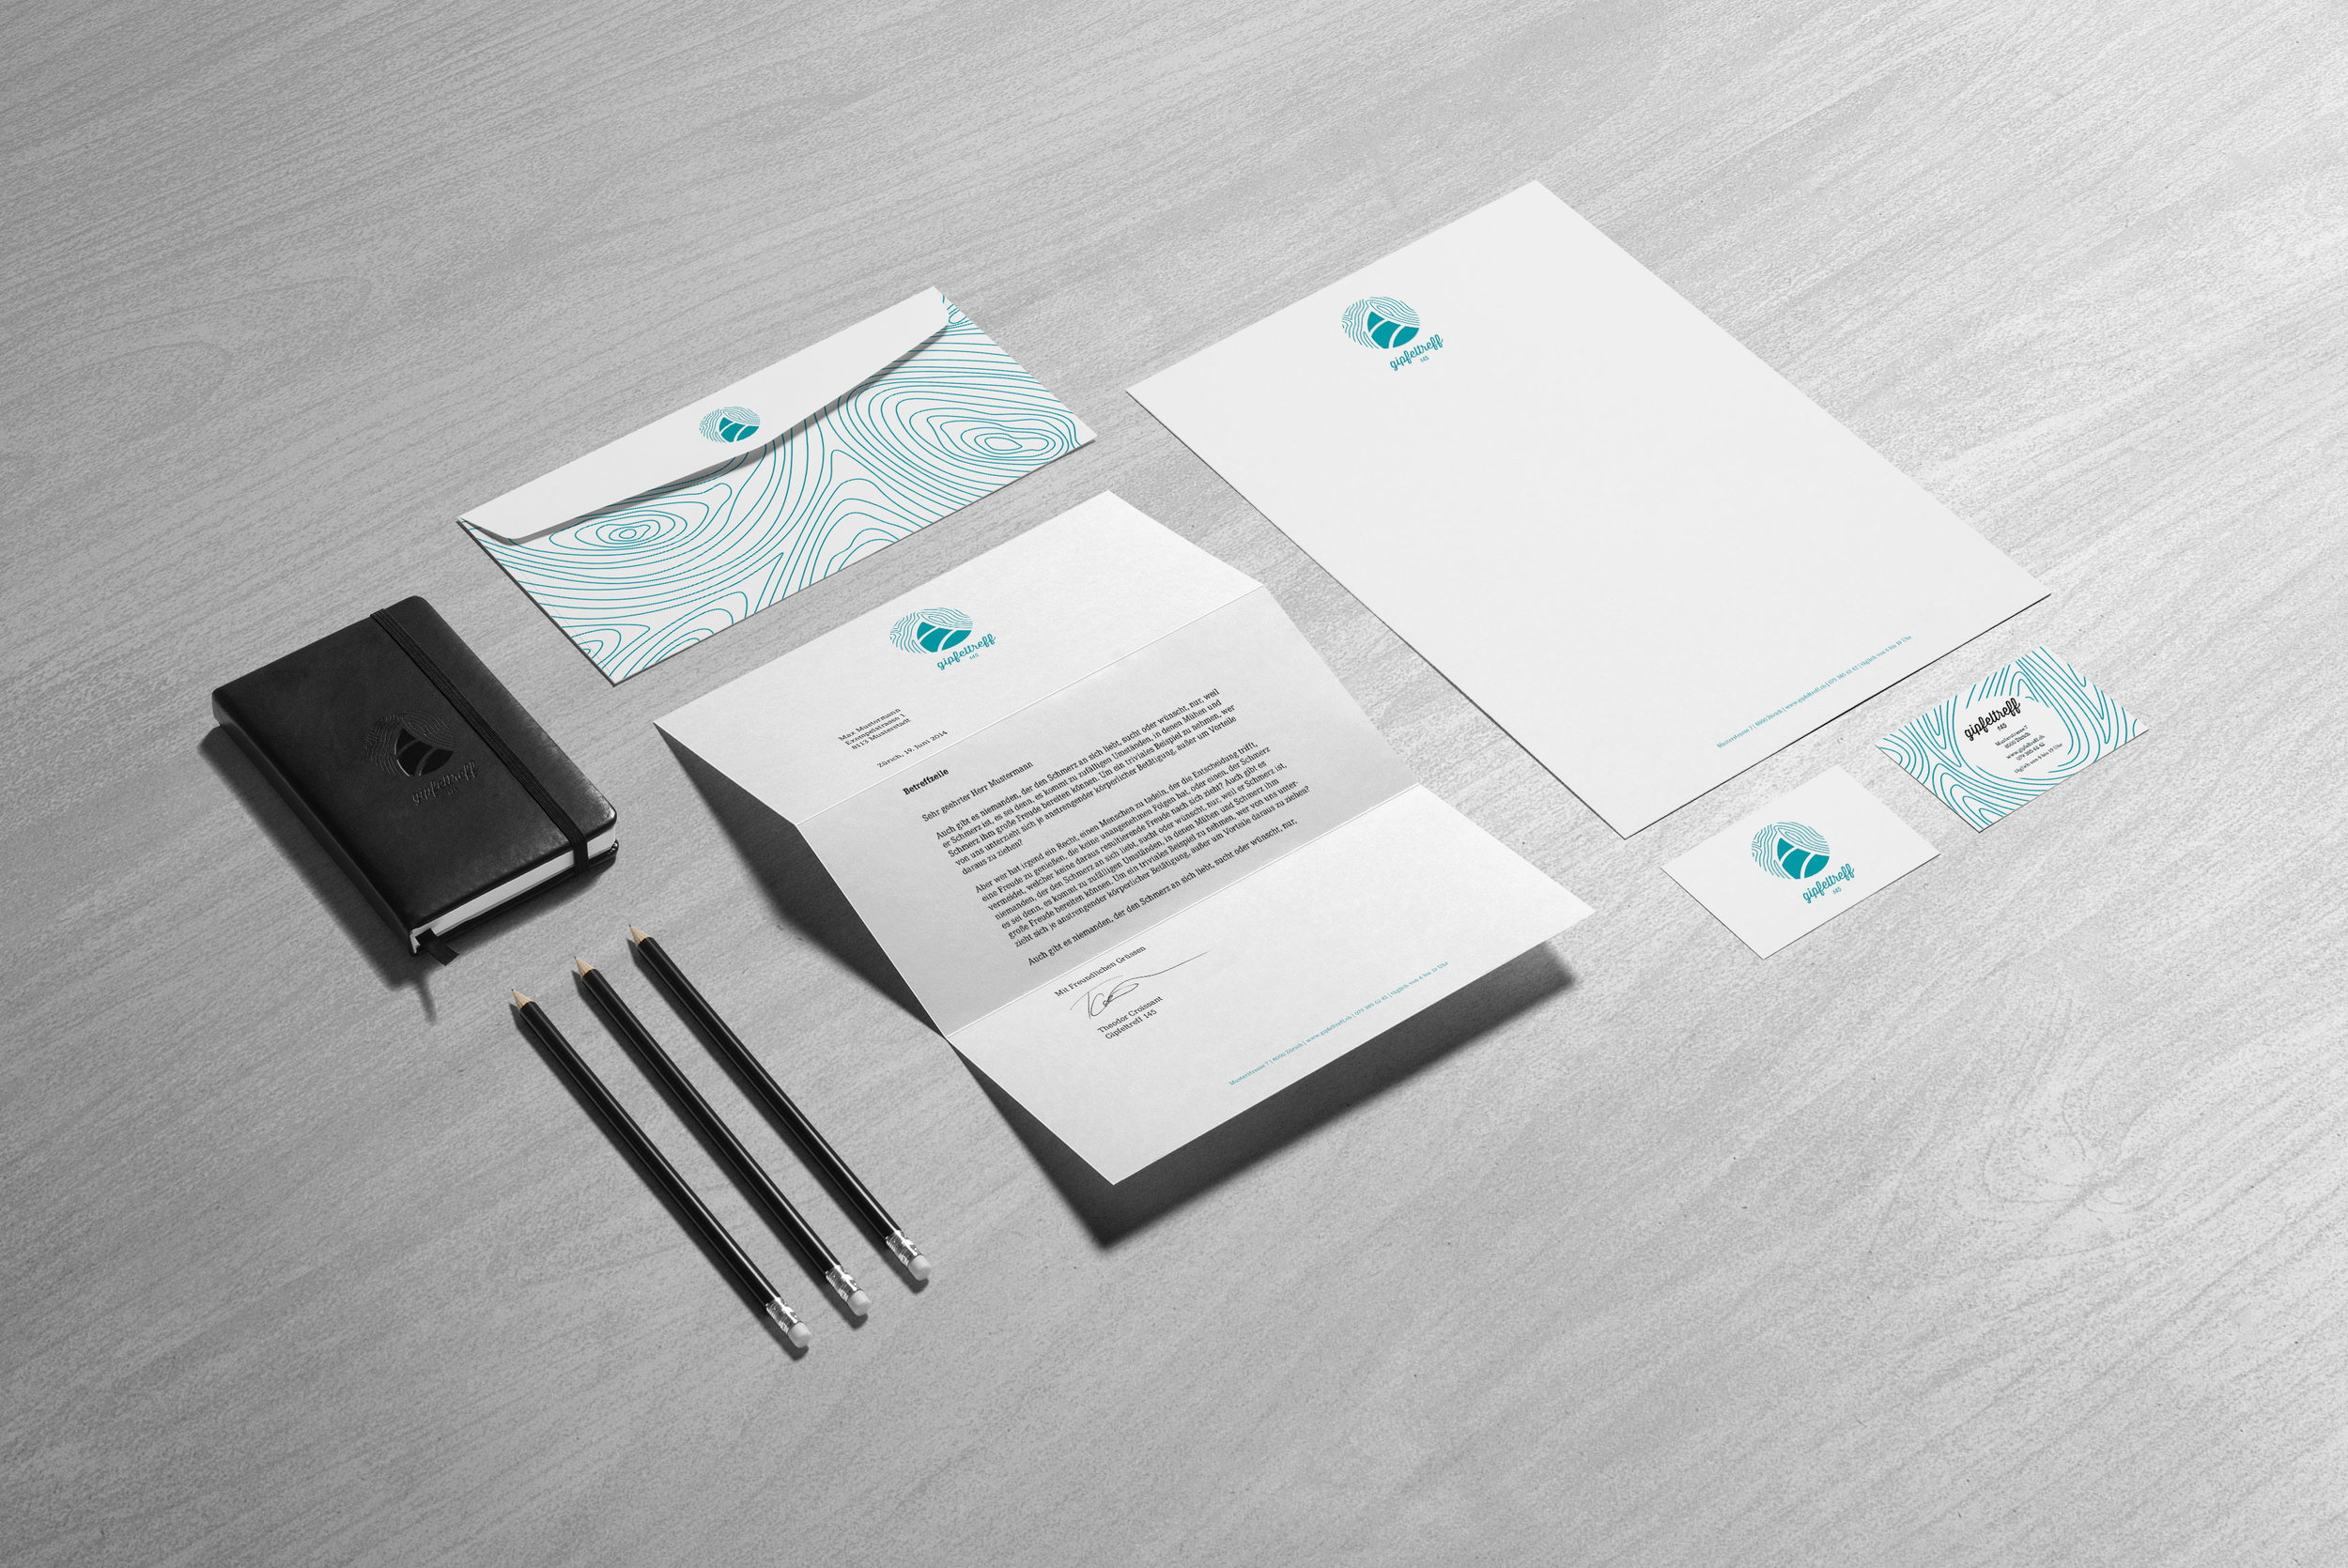 03-stationery-business-classic-mockup-inter-size.jpg